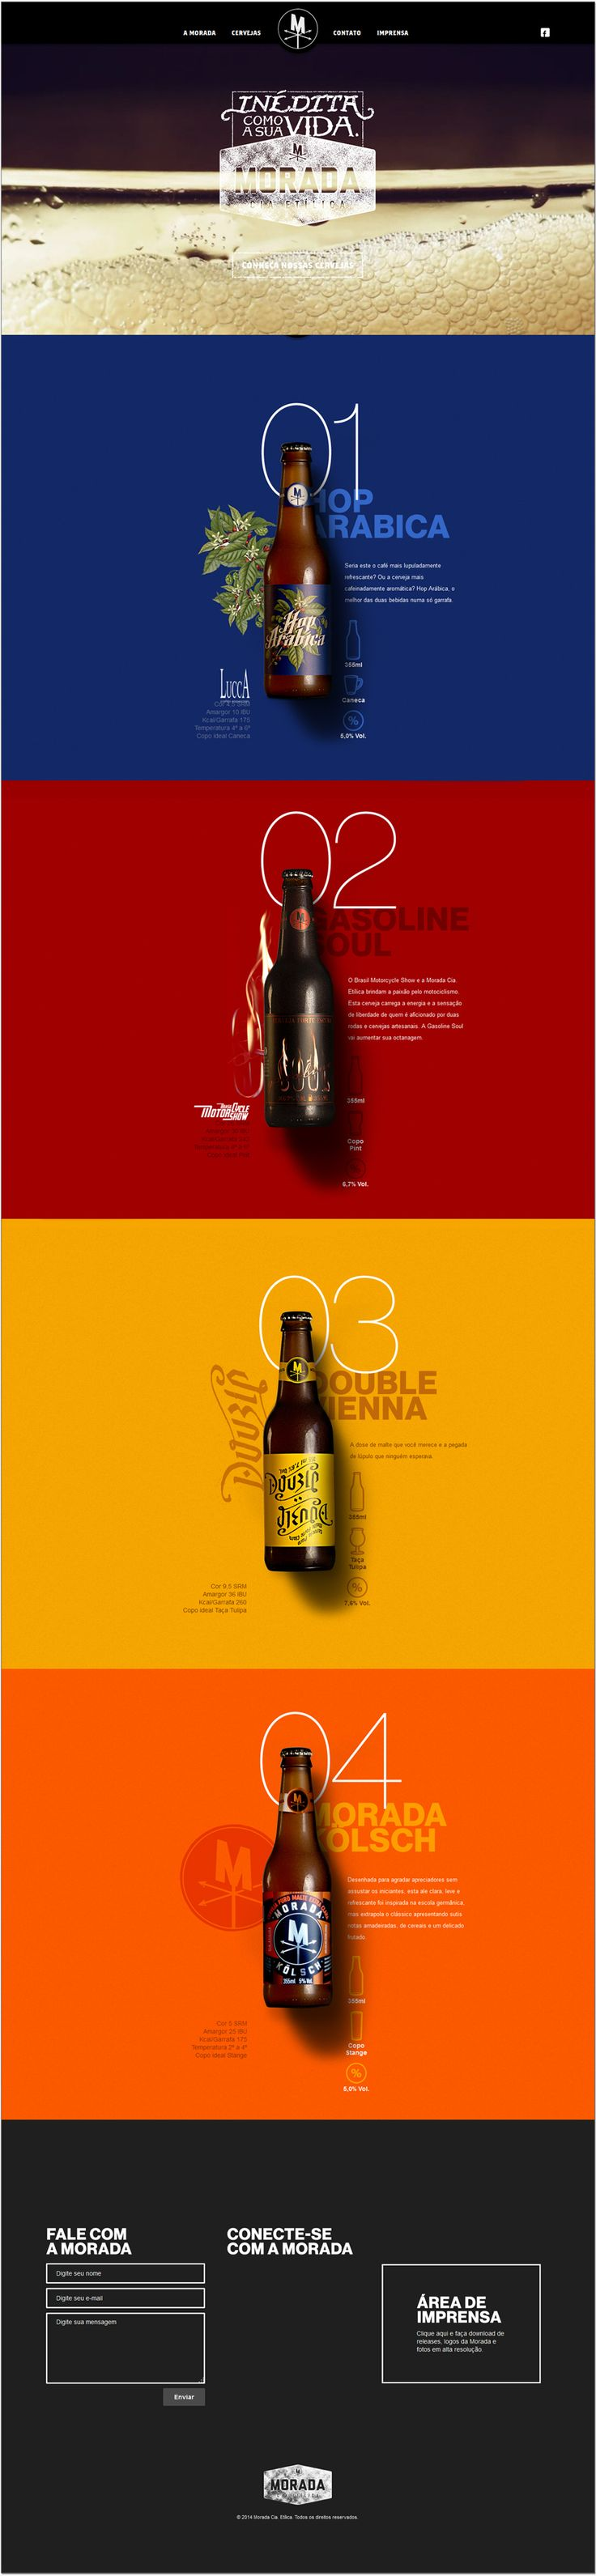 Daily Web Design And Development Inspirations No.412